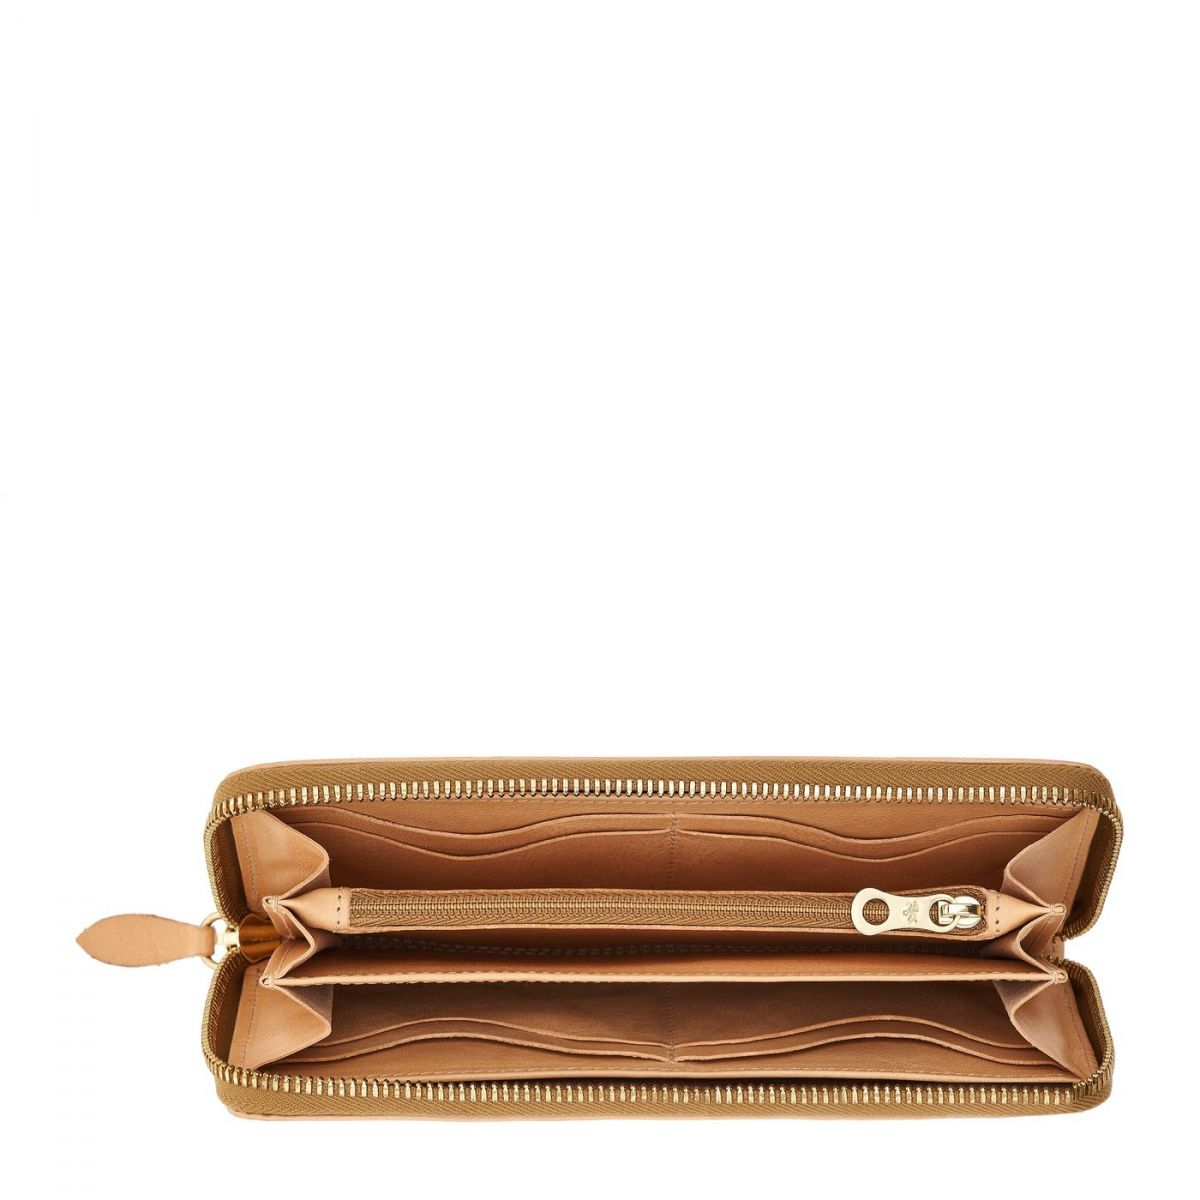 Women's Zip Around Wallet in Cowhide Leather color Natural - SZW033   Details